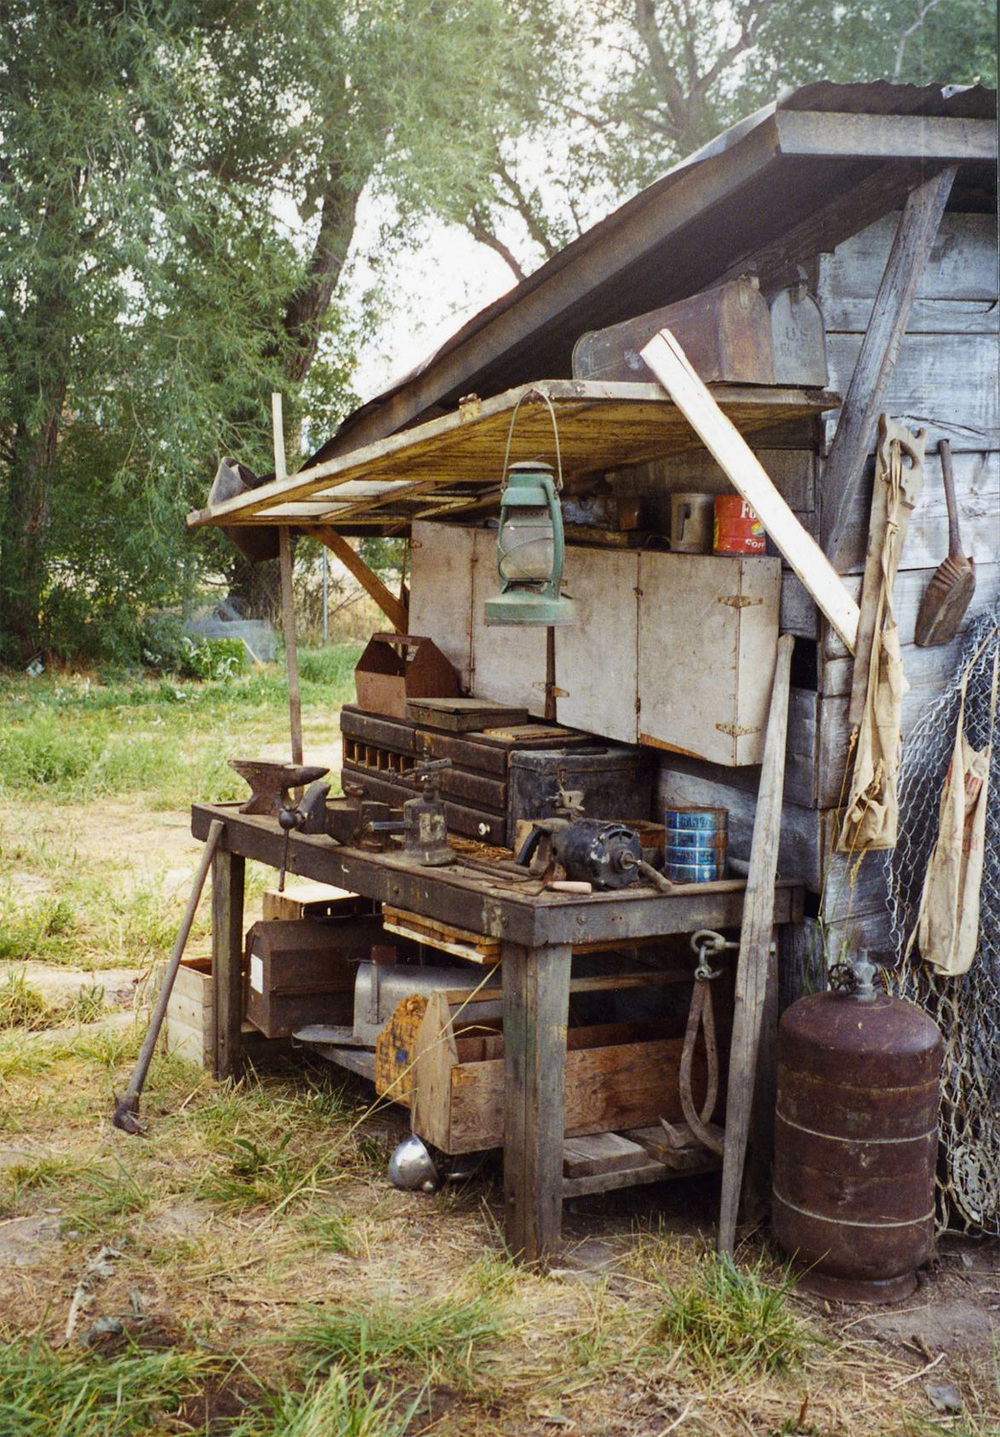 Detail of the garden shack.